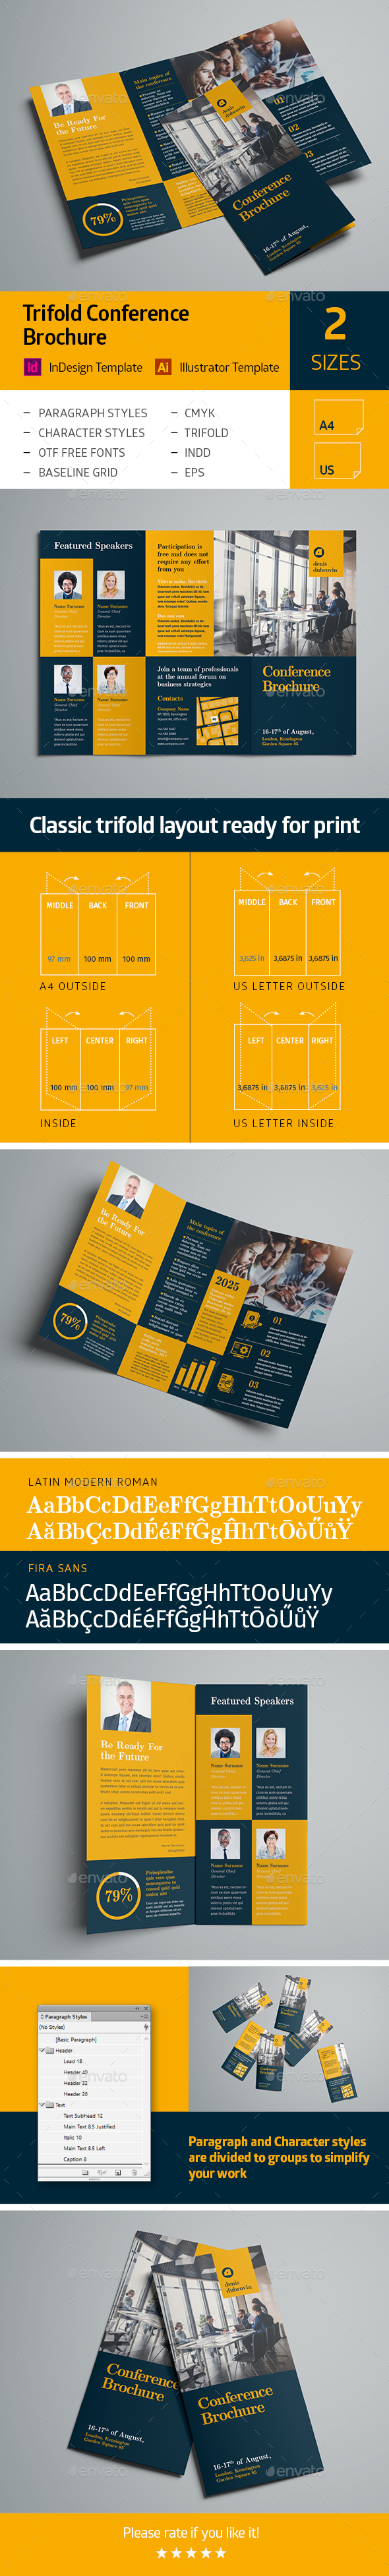 Trifold Conference Brochure - Corporate Brochures